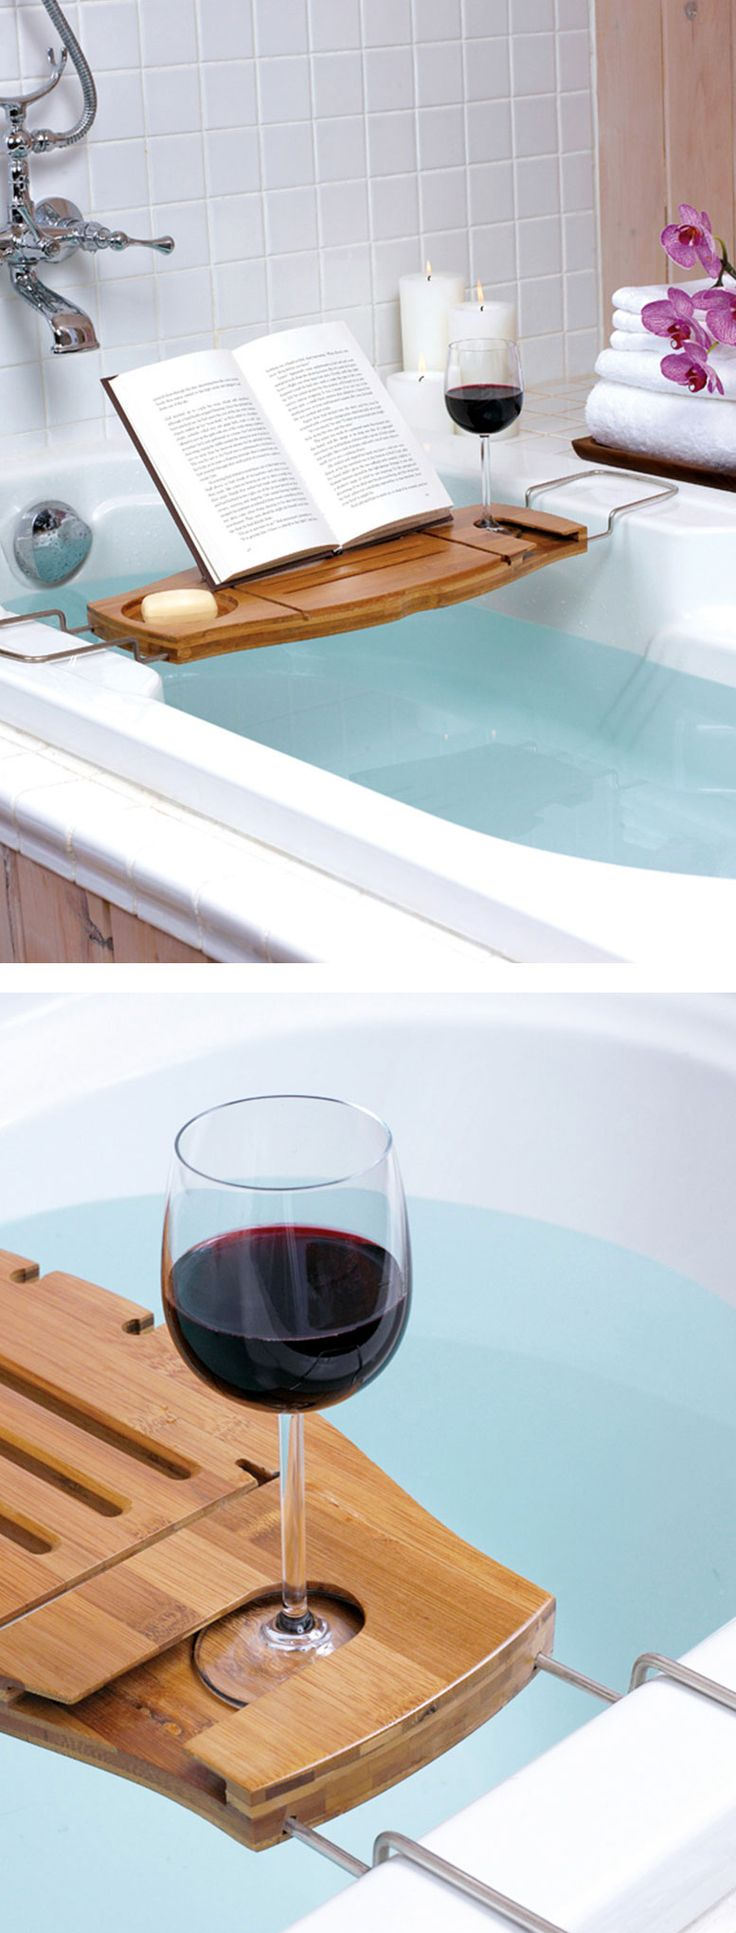 17 best images about cool things everyone should have on for Bathroom caddies accessories